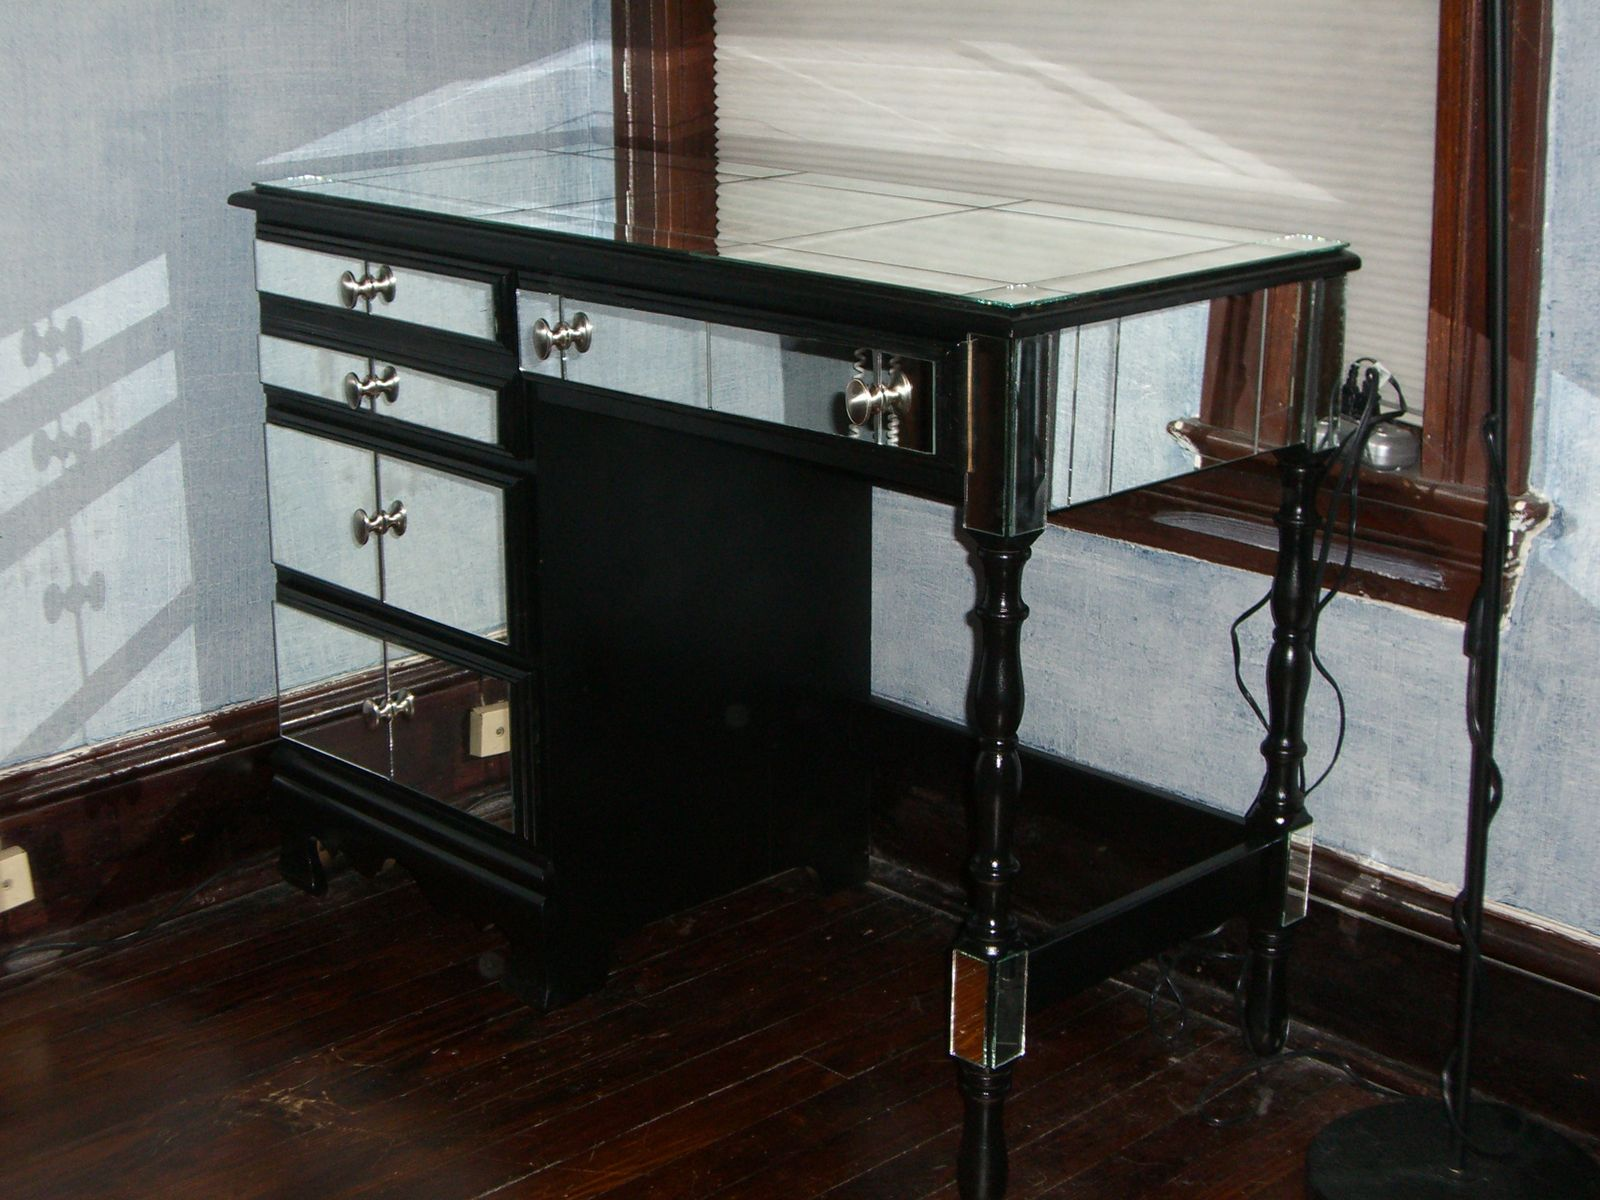 ikea mirrored furniture. I Am Pleased With The Results And Even My Husband Who Hates Mirrored Furniture Likes It. Ikea L